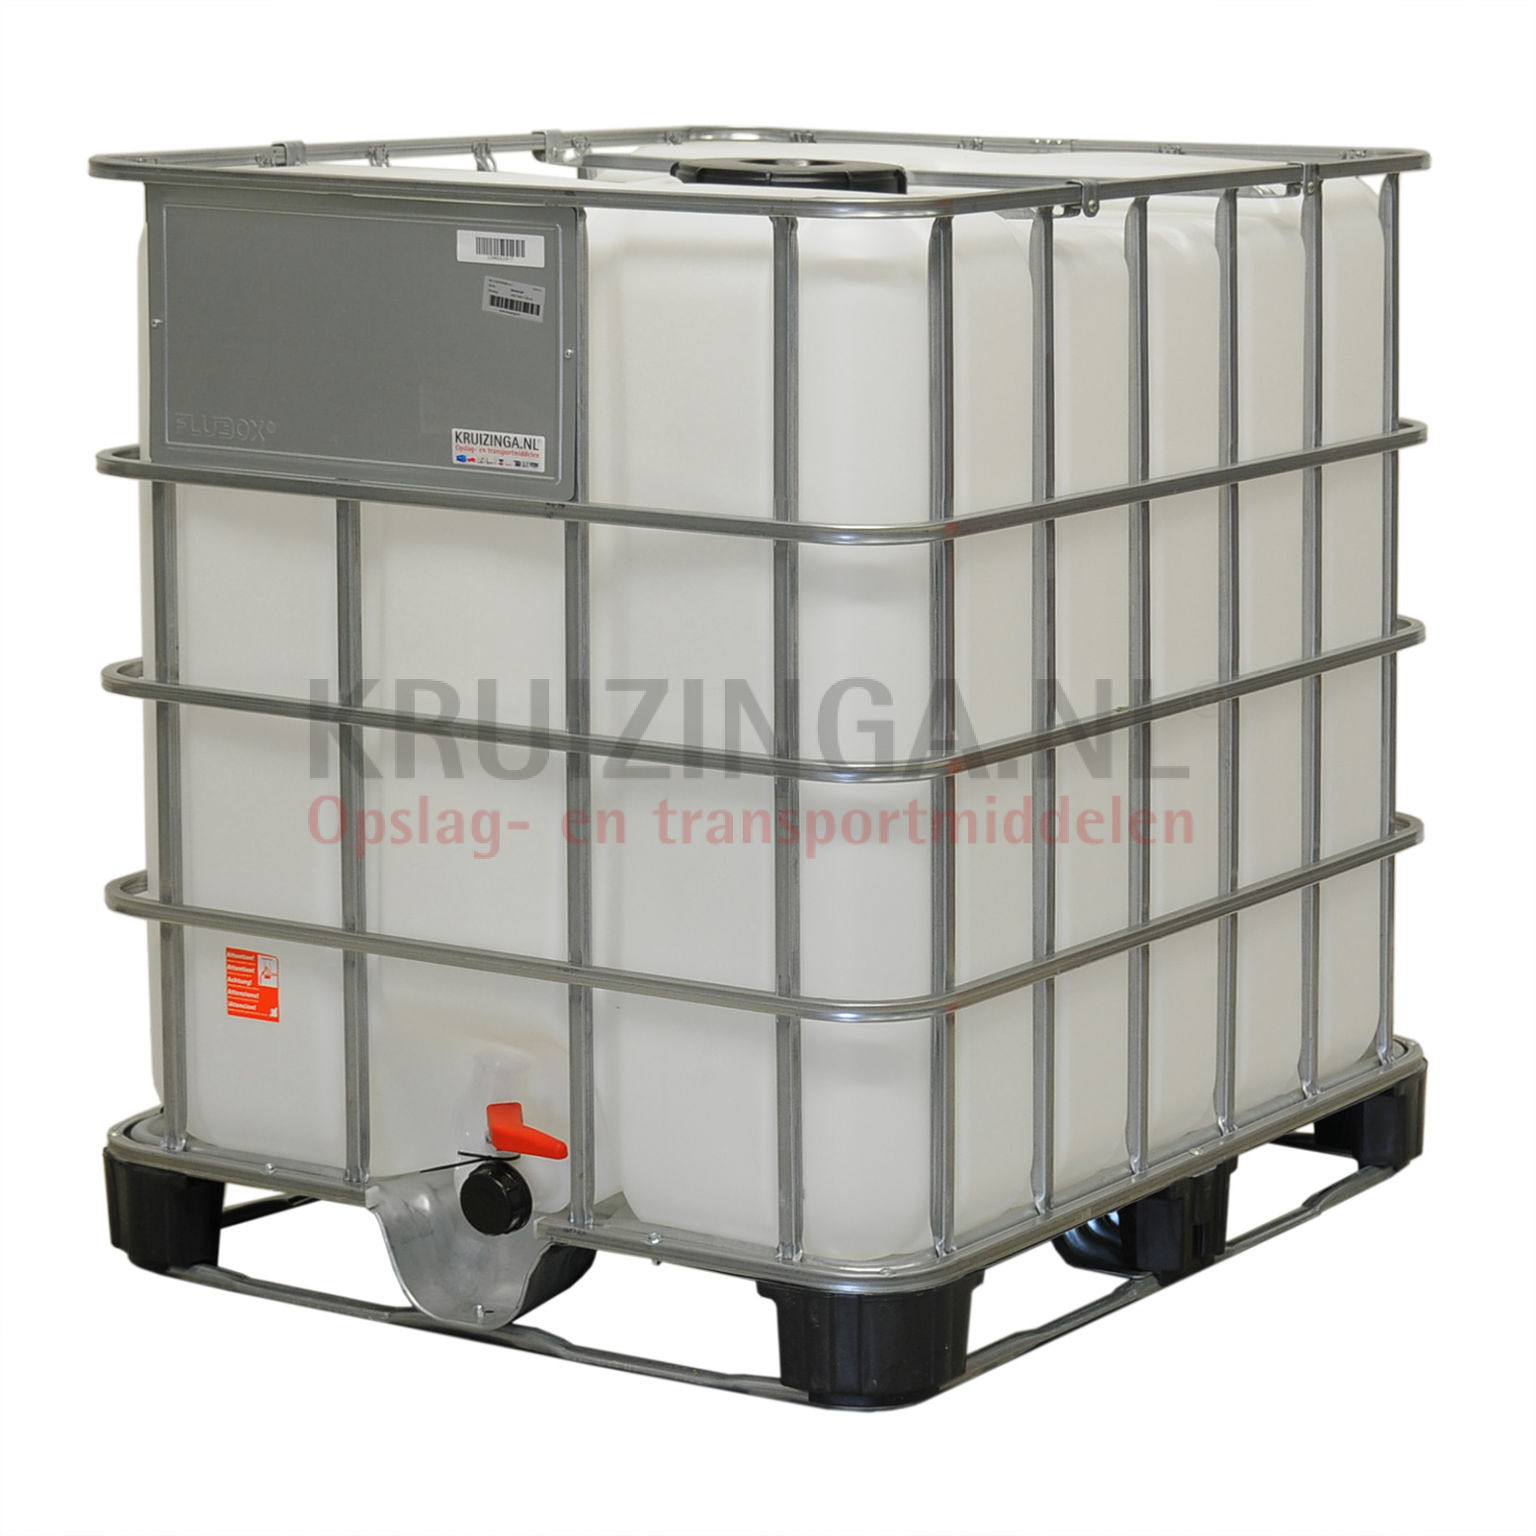 ibc container ibc container 1000 ltr ab 192 50 frei haus. Black Bedroom Furniture Sets. Home Design Ideas